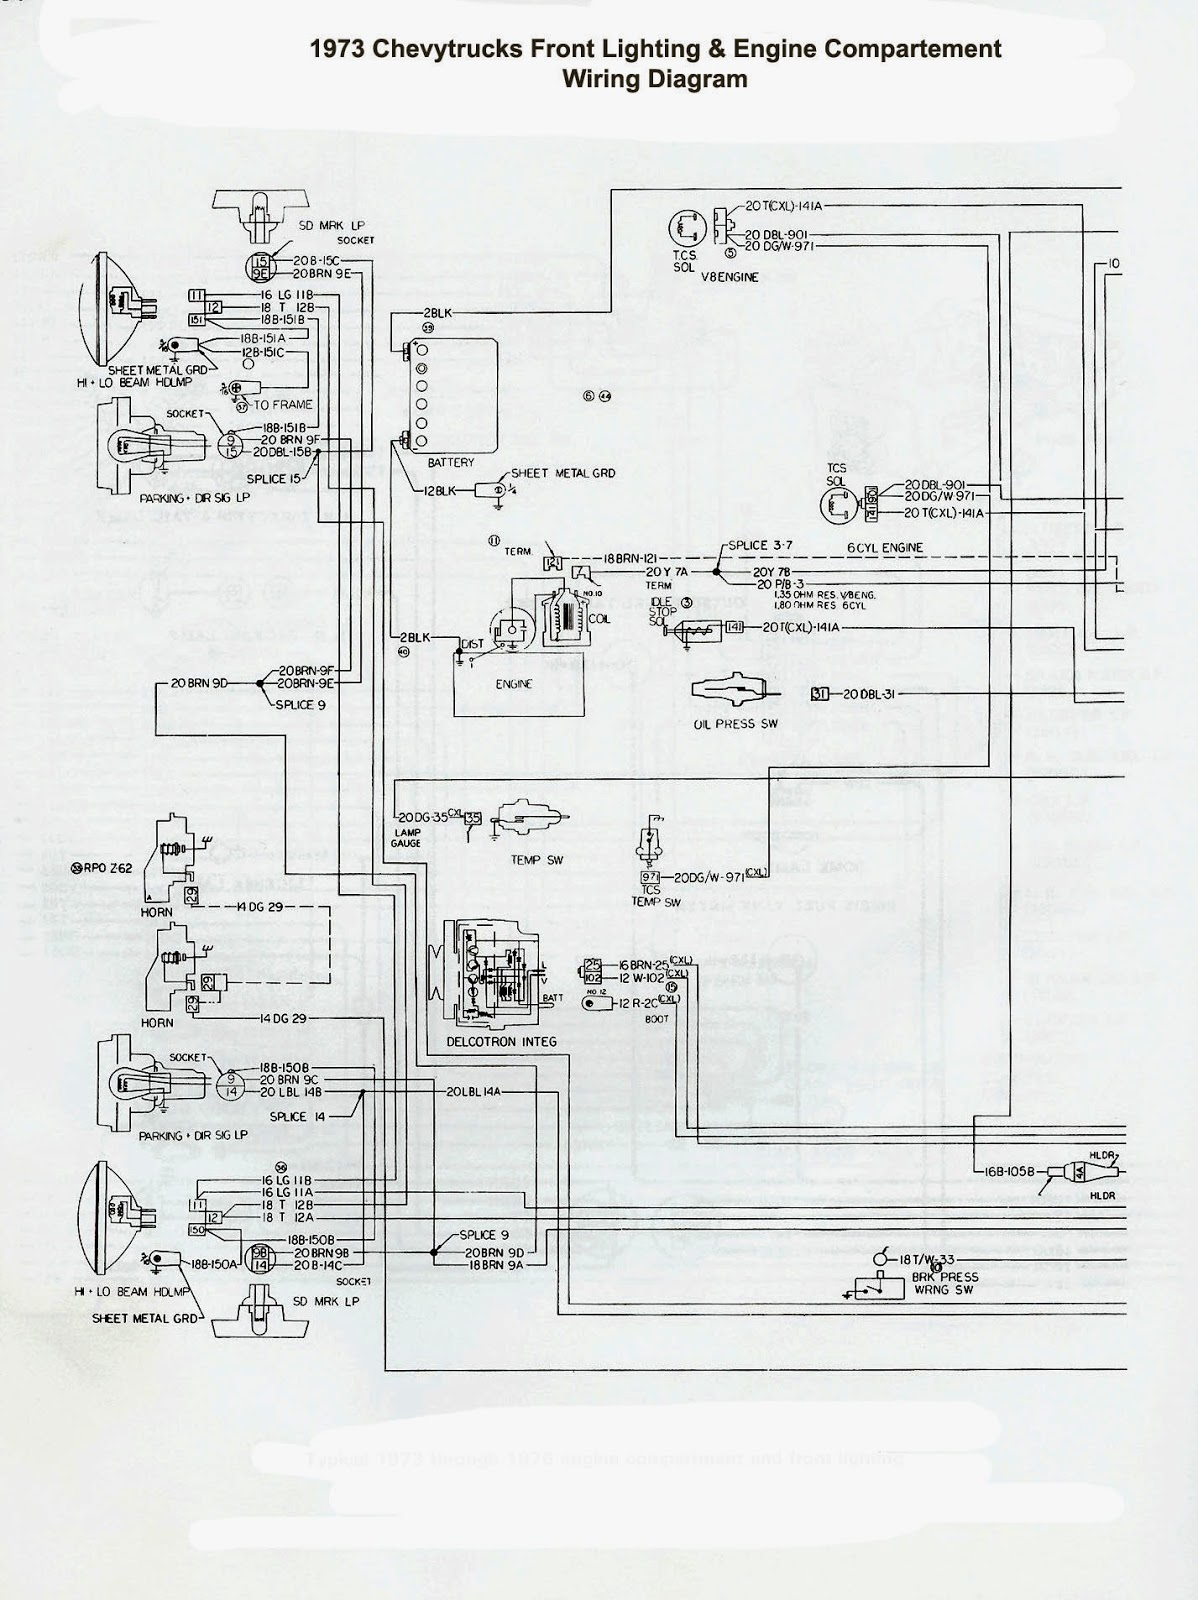 1978 Chevy Truck Wiring Diagram Opinions About 79 Cheyenne Starter Trucks Front Lighting Engine Compartement Electrical Winding Silverado